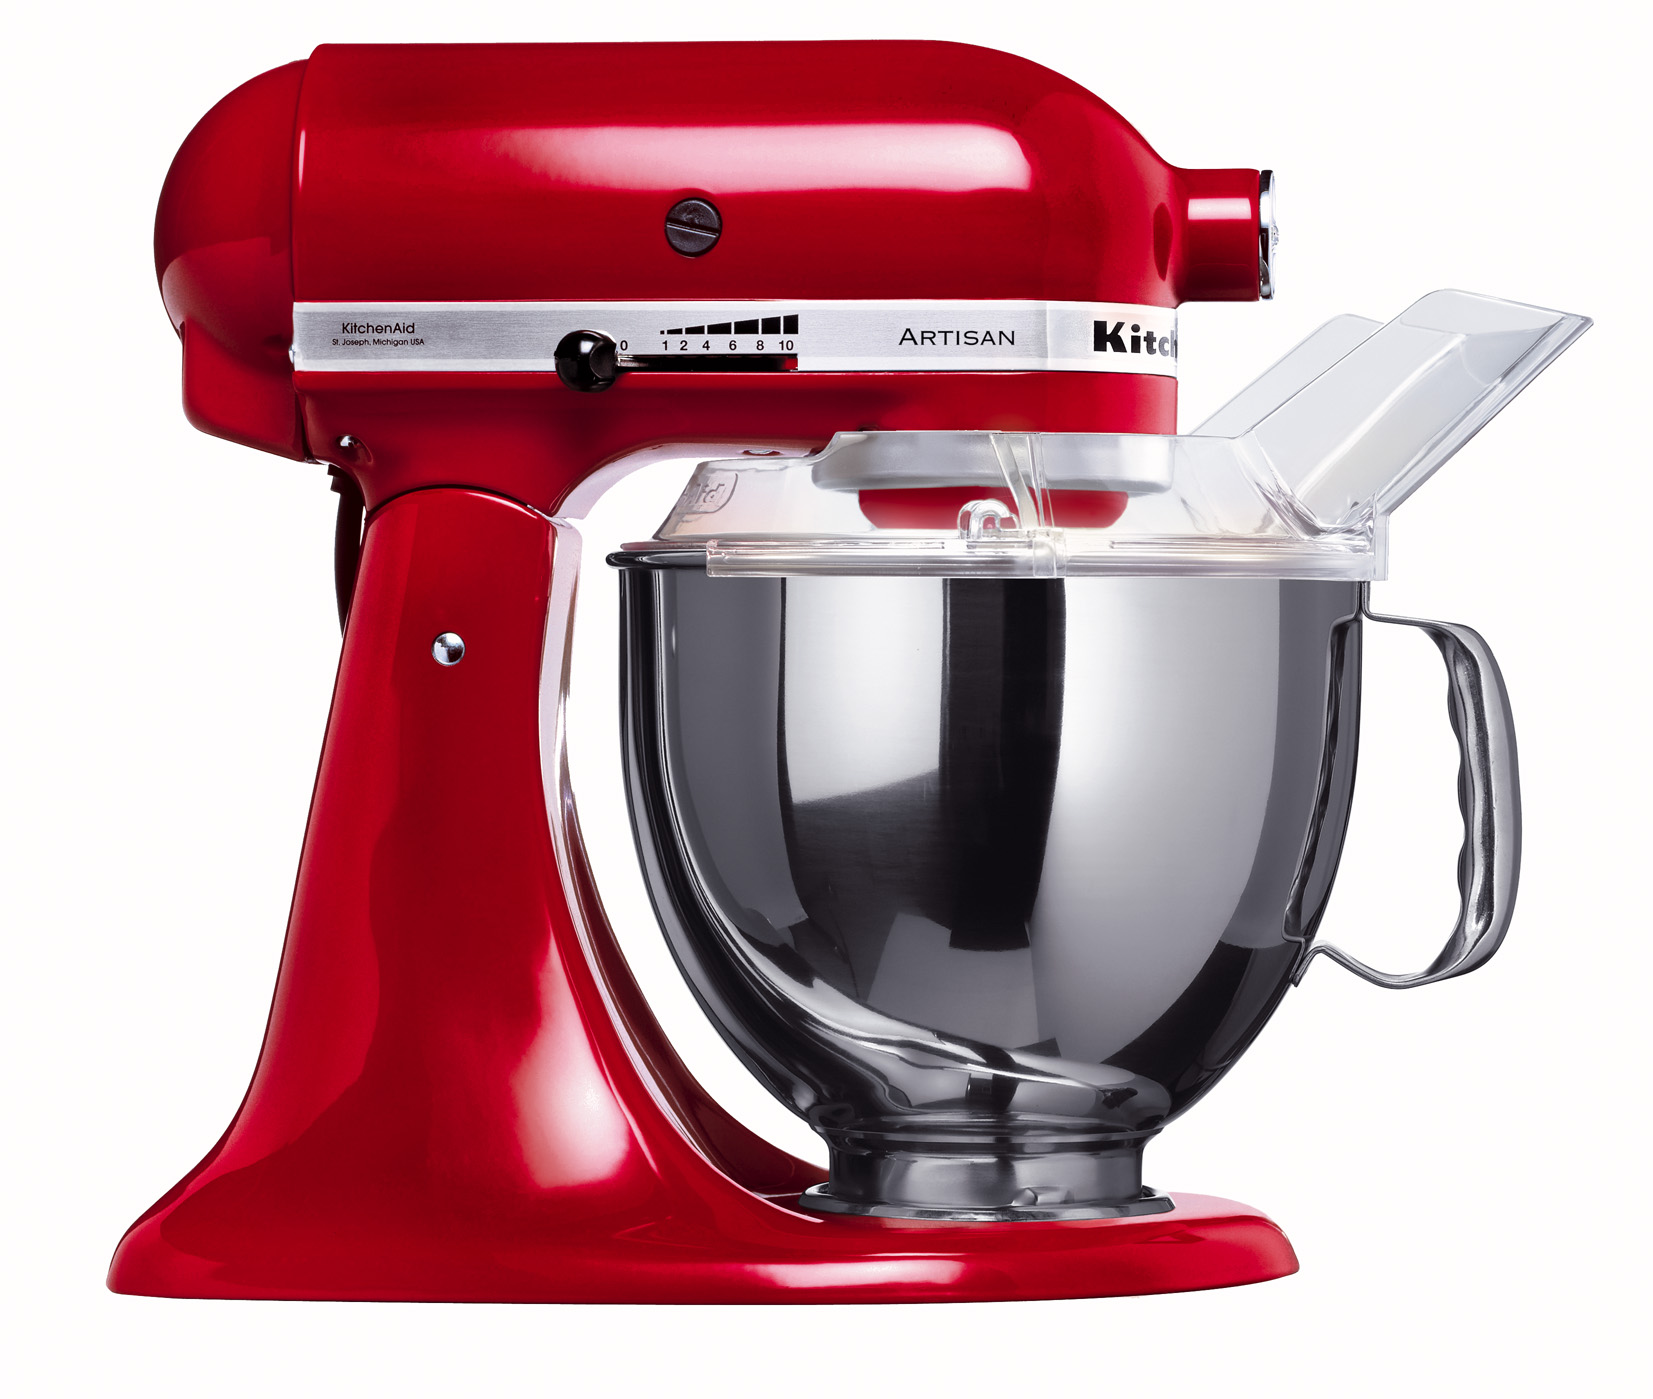 kitchenaid artisan 5ksm150 stand mixer que seja doce. Black Bedroom Furniture Sets. Home Design Ideas